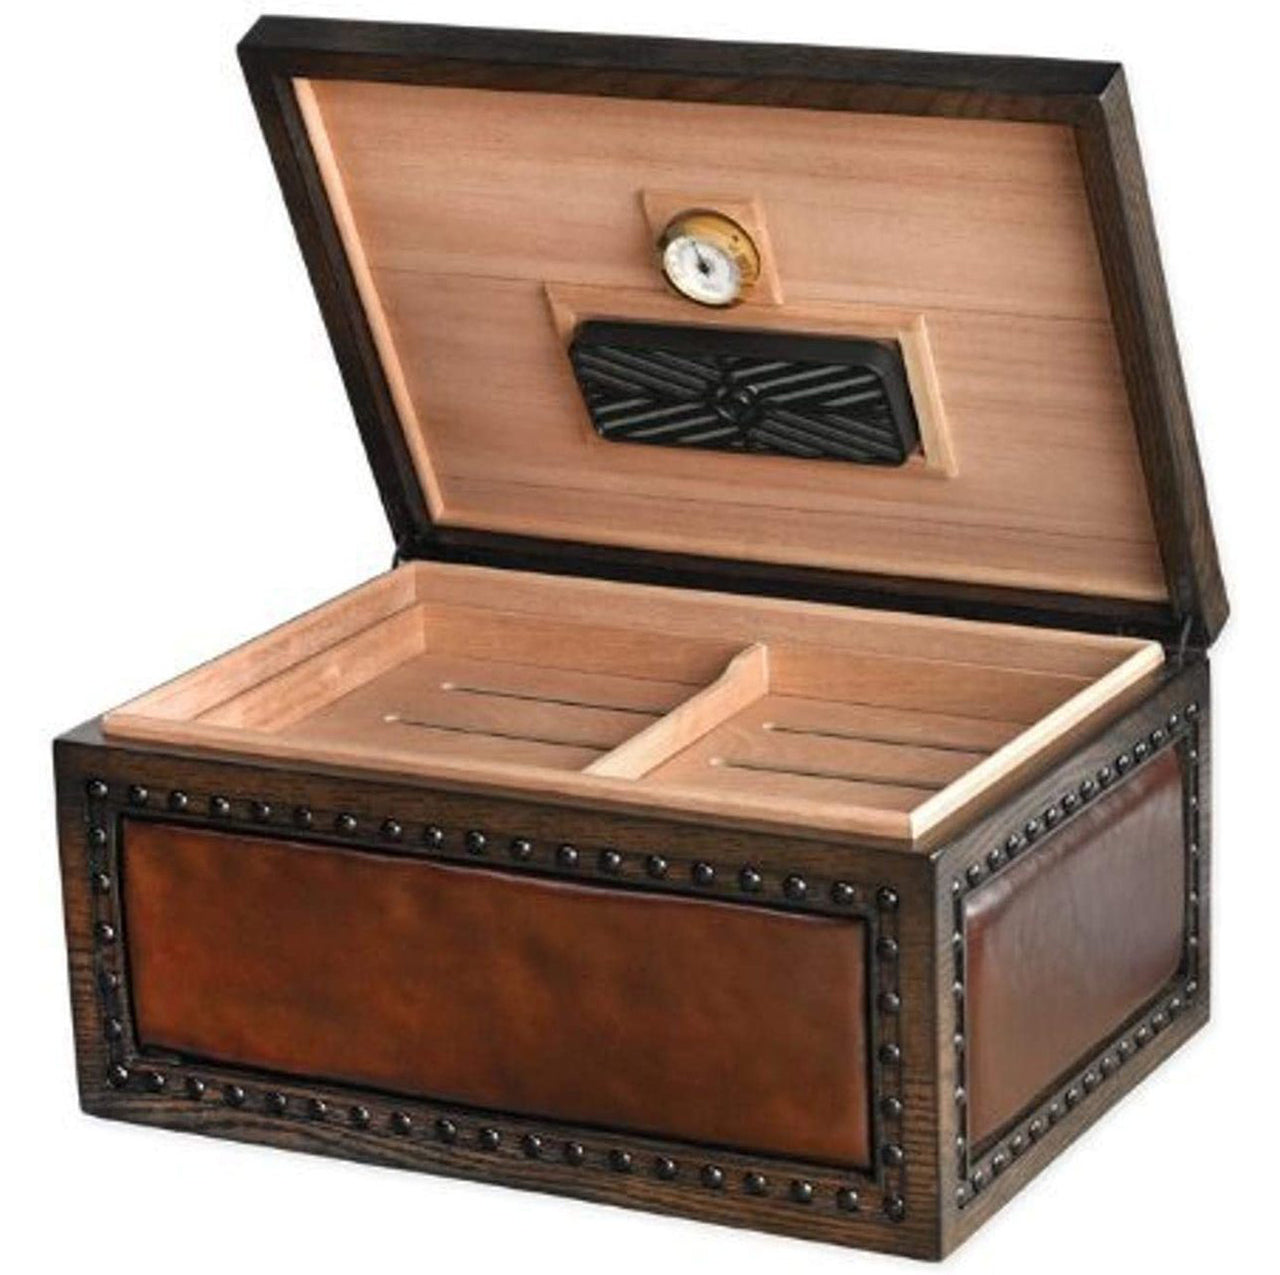 """LE VERONESE"" Leather Upholstered Desktop Humidor for 200 Cigars"